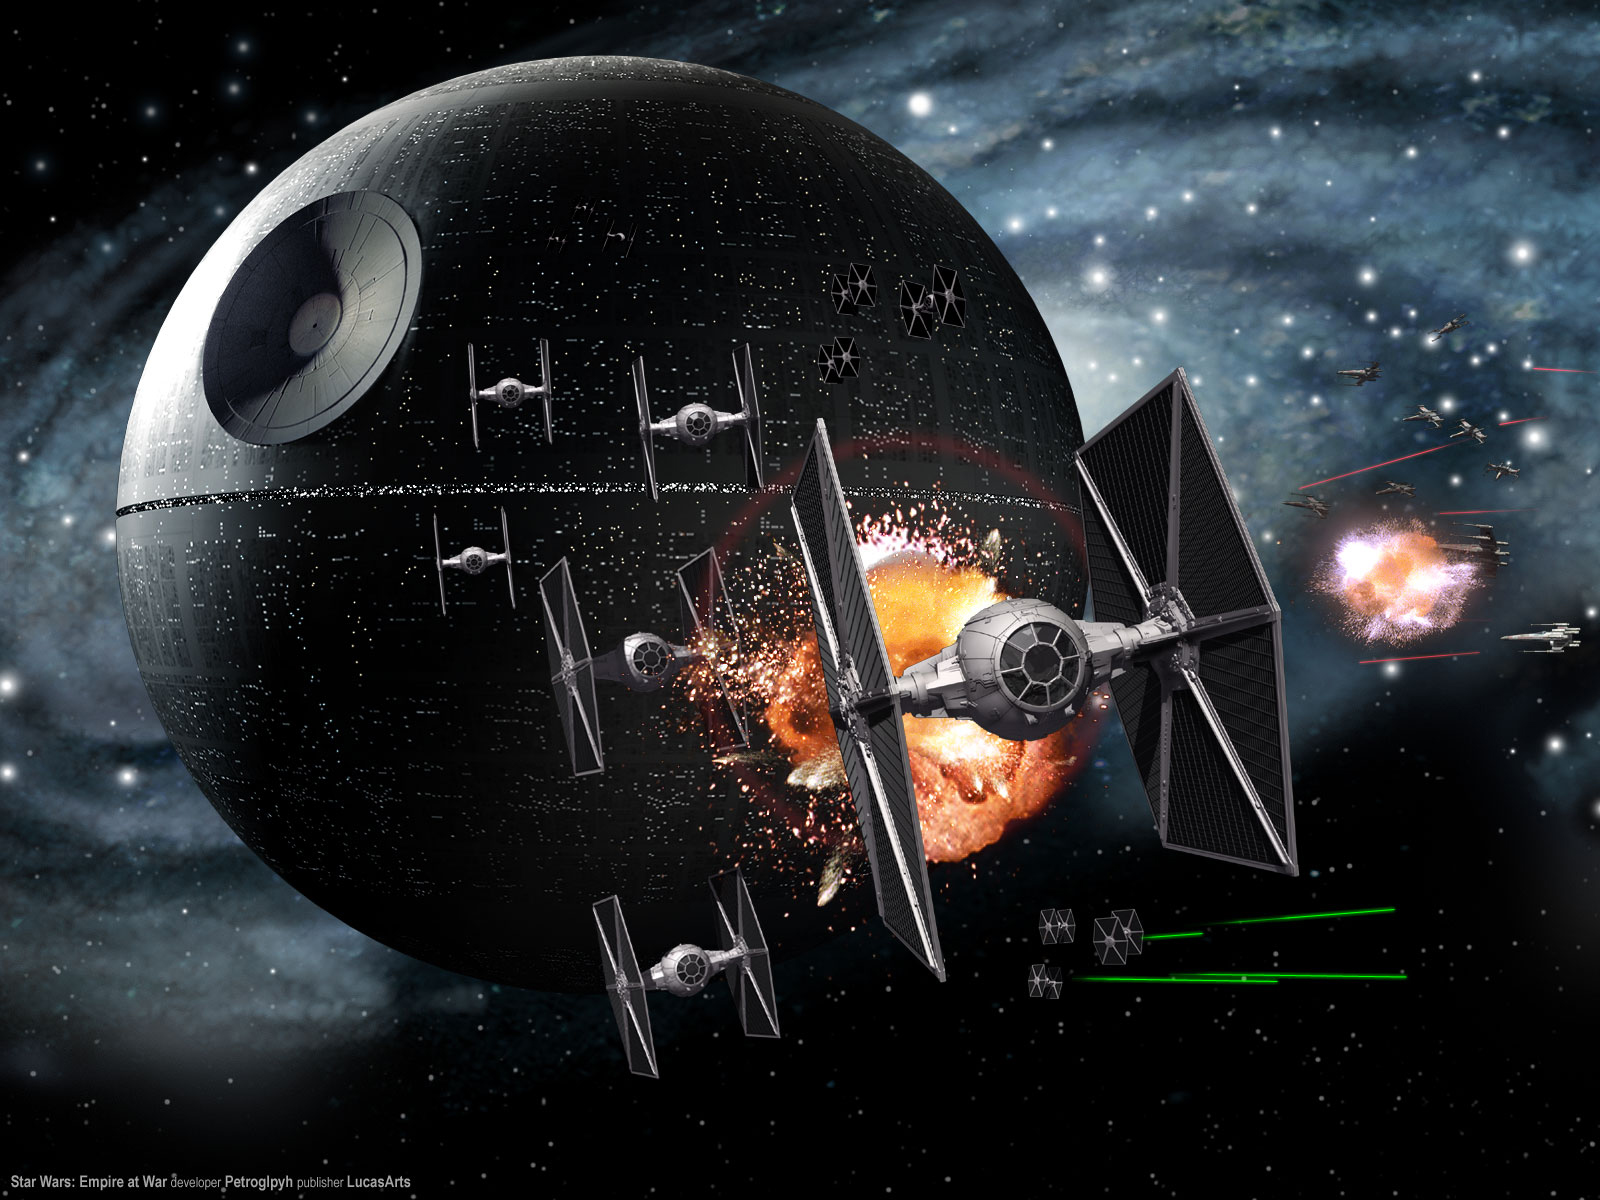 STAR WARS Wallpaper Set 3 « Awesome Wallpapers